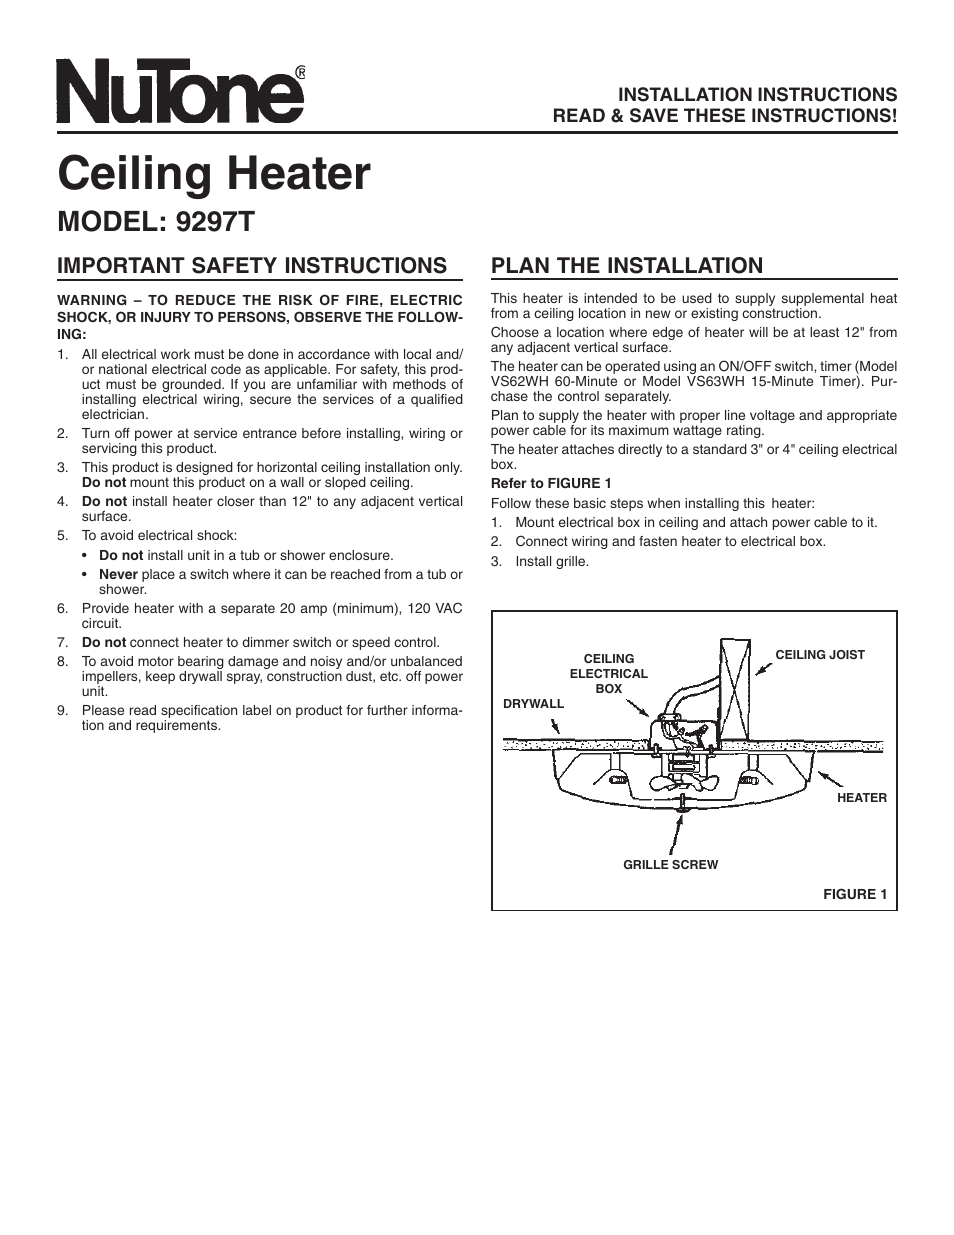 Nutone 9297t User Manual 8 Pages Ceiling Heater Wiring Diagram